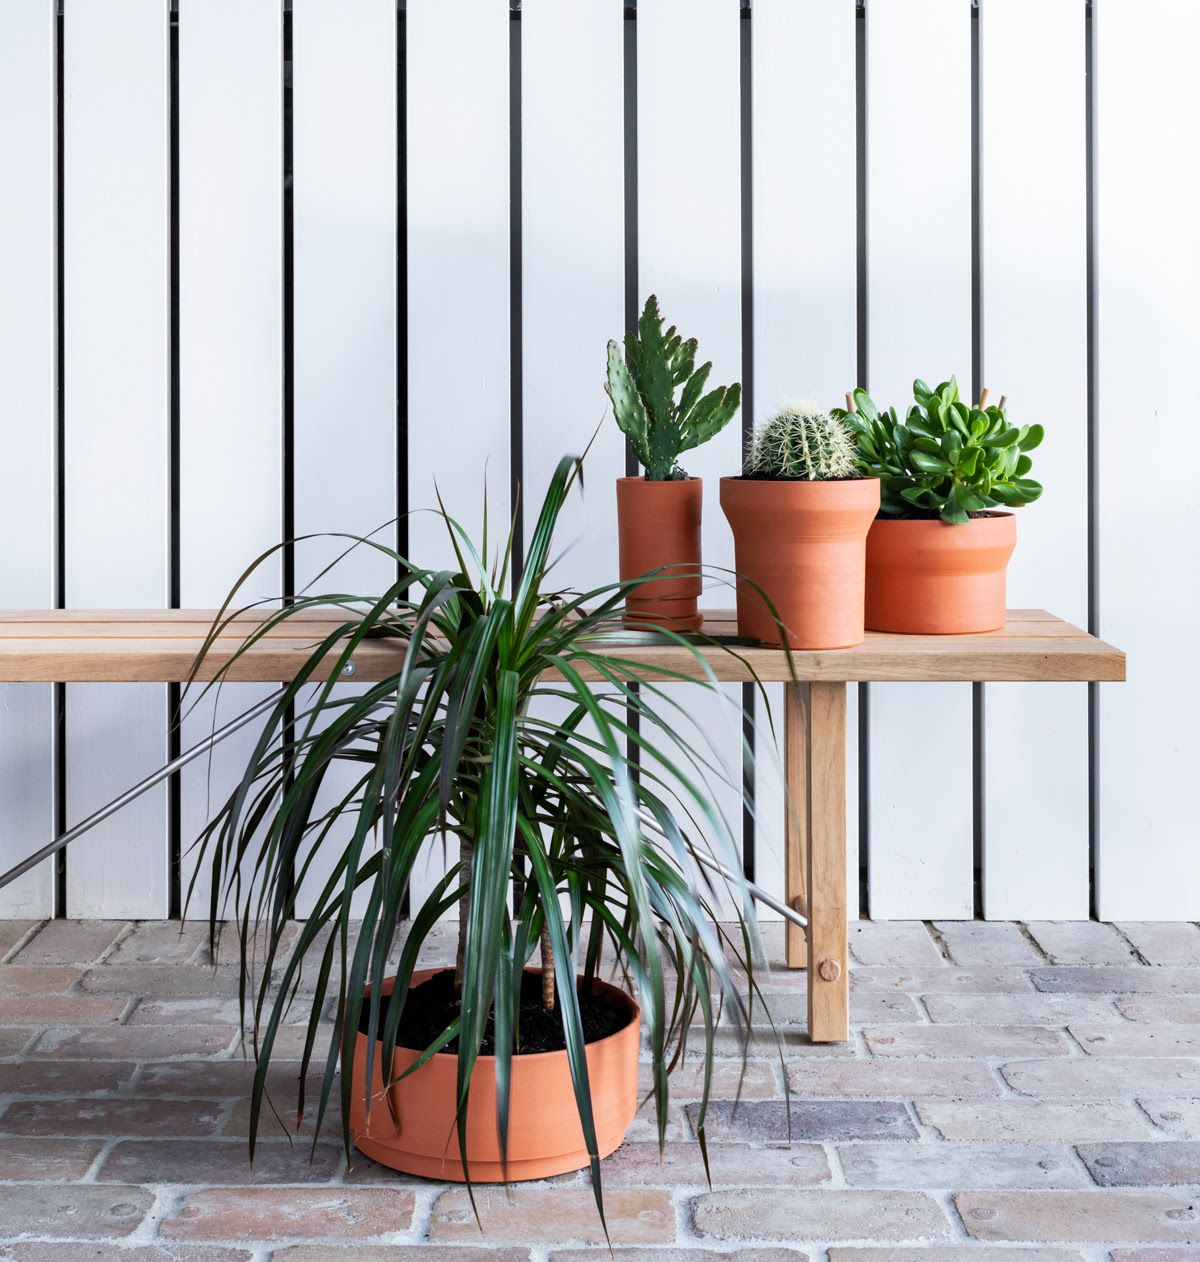 Architecturallyinspired planters by anchor ceramics